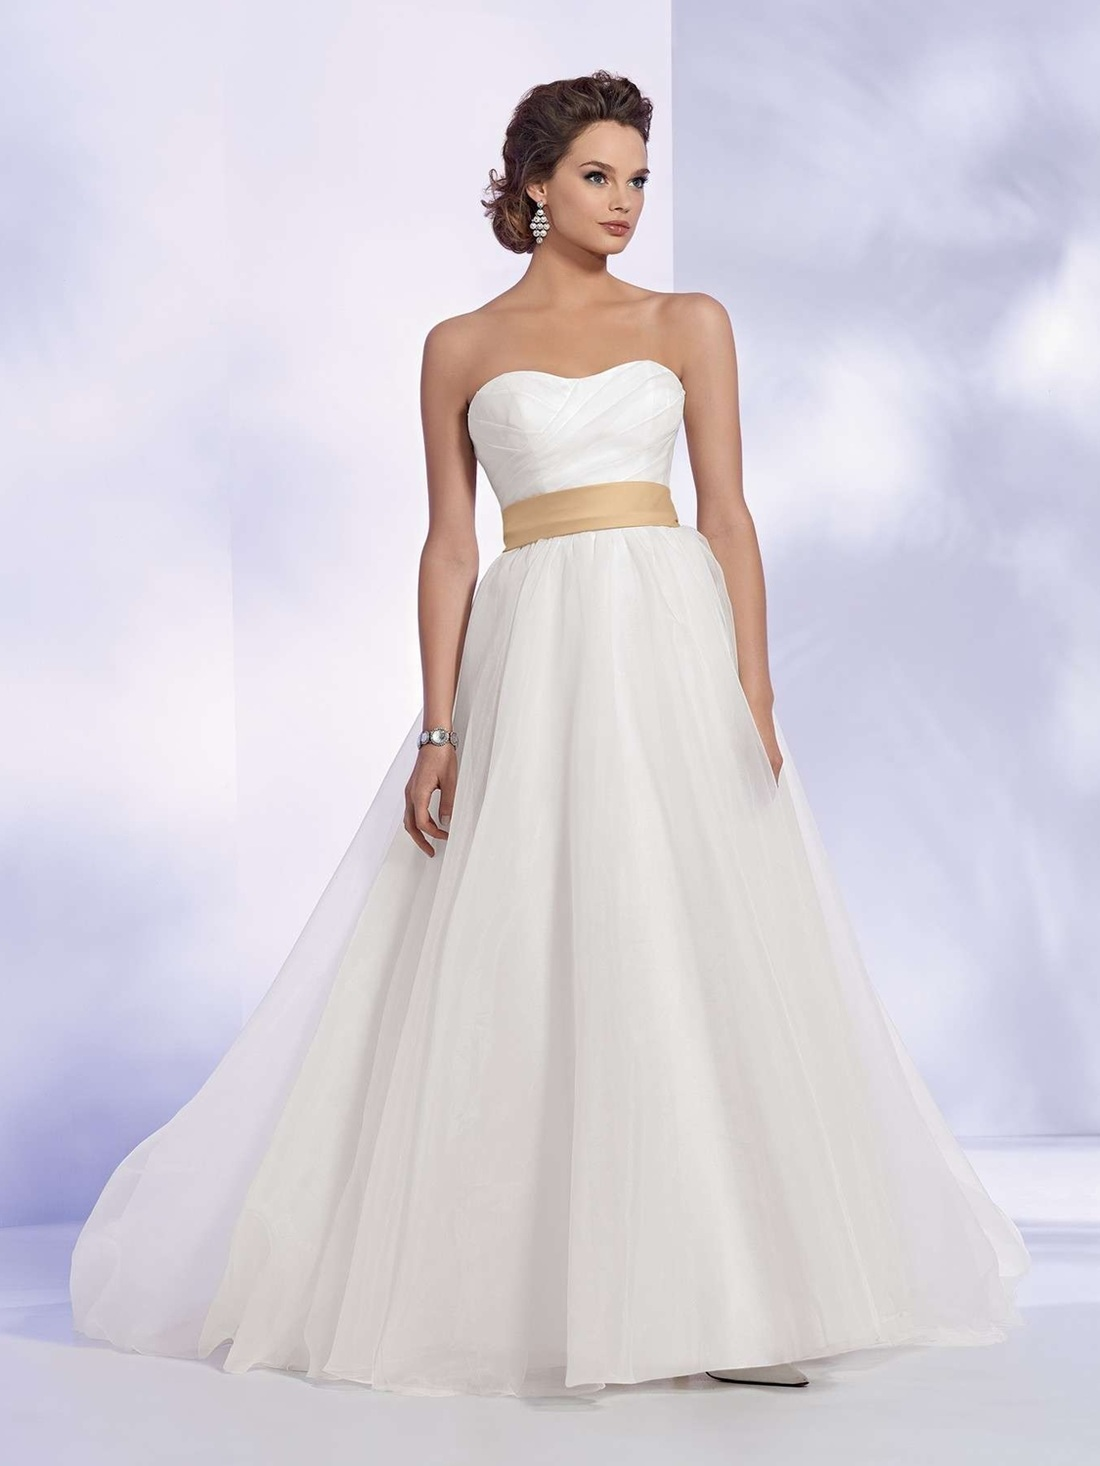 Unique wedding dress alternative wedding dress alternate wedding - Picture Picture Benjamin Roberts 2605 Benjamin Roberts Wedding Dress Affordable Alternatives To Benjamin Roberts